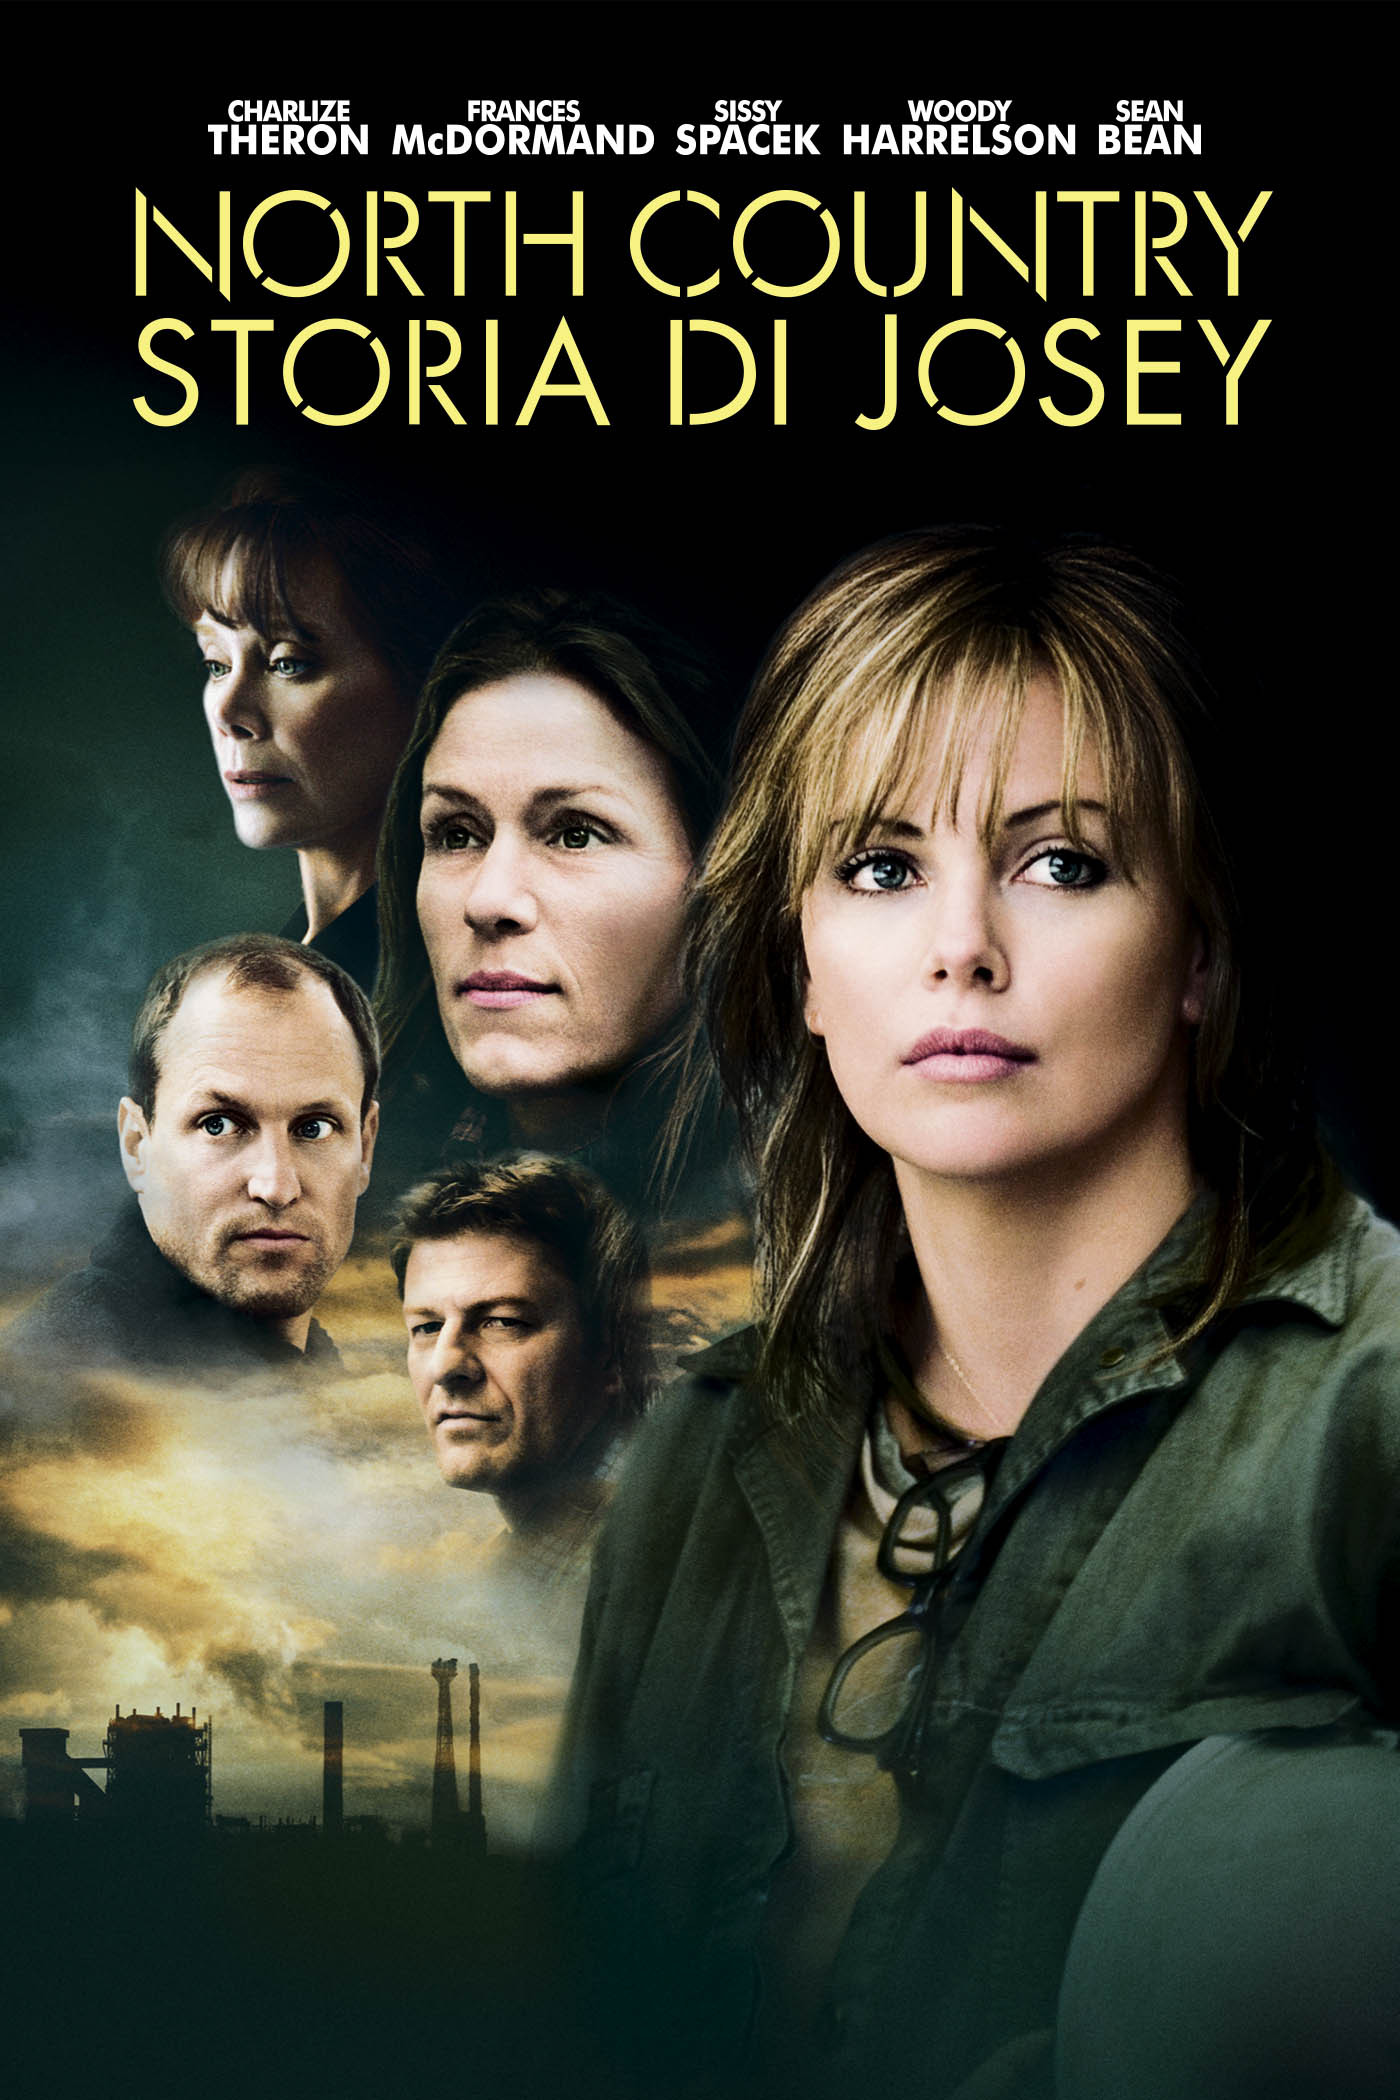 North Country - Storia di Josey